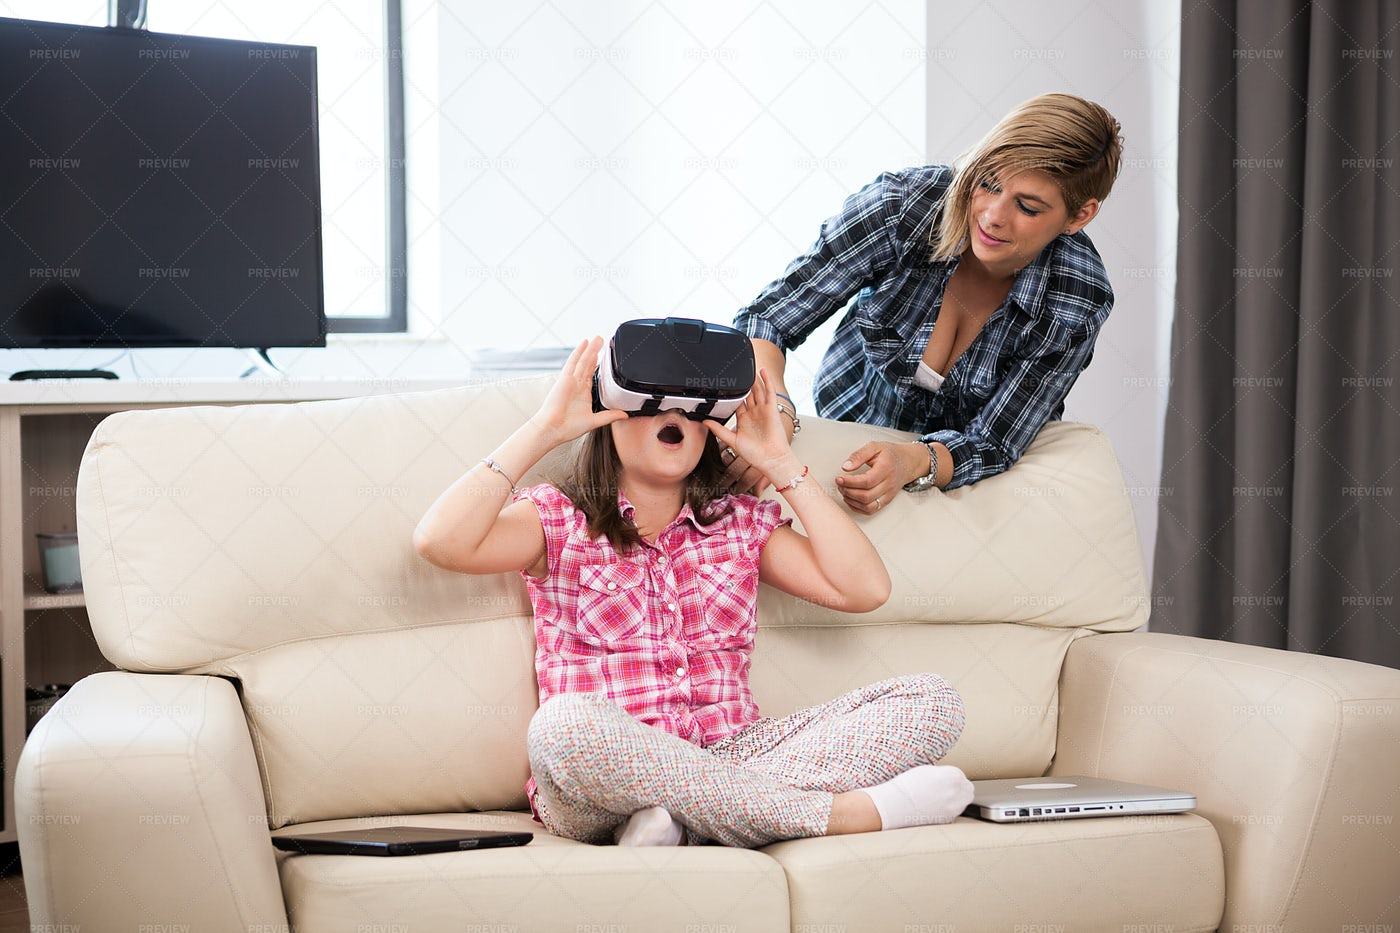 Daughter Wearing VR Goggles: Stock Photos